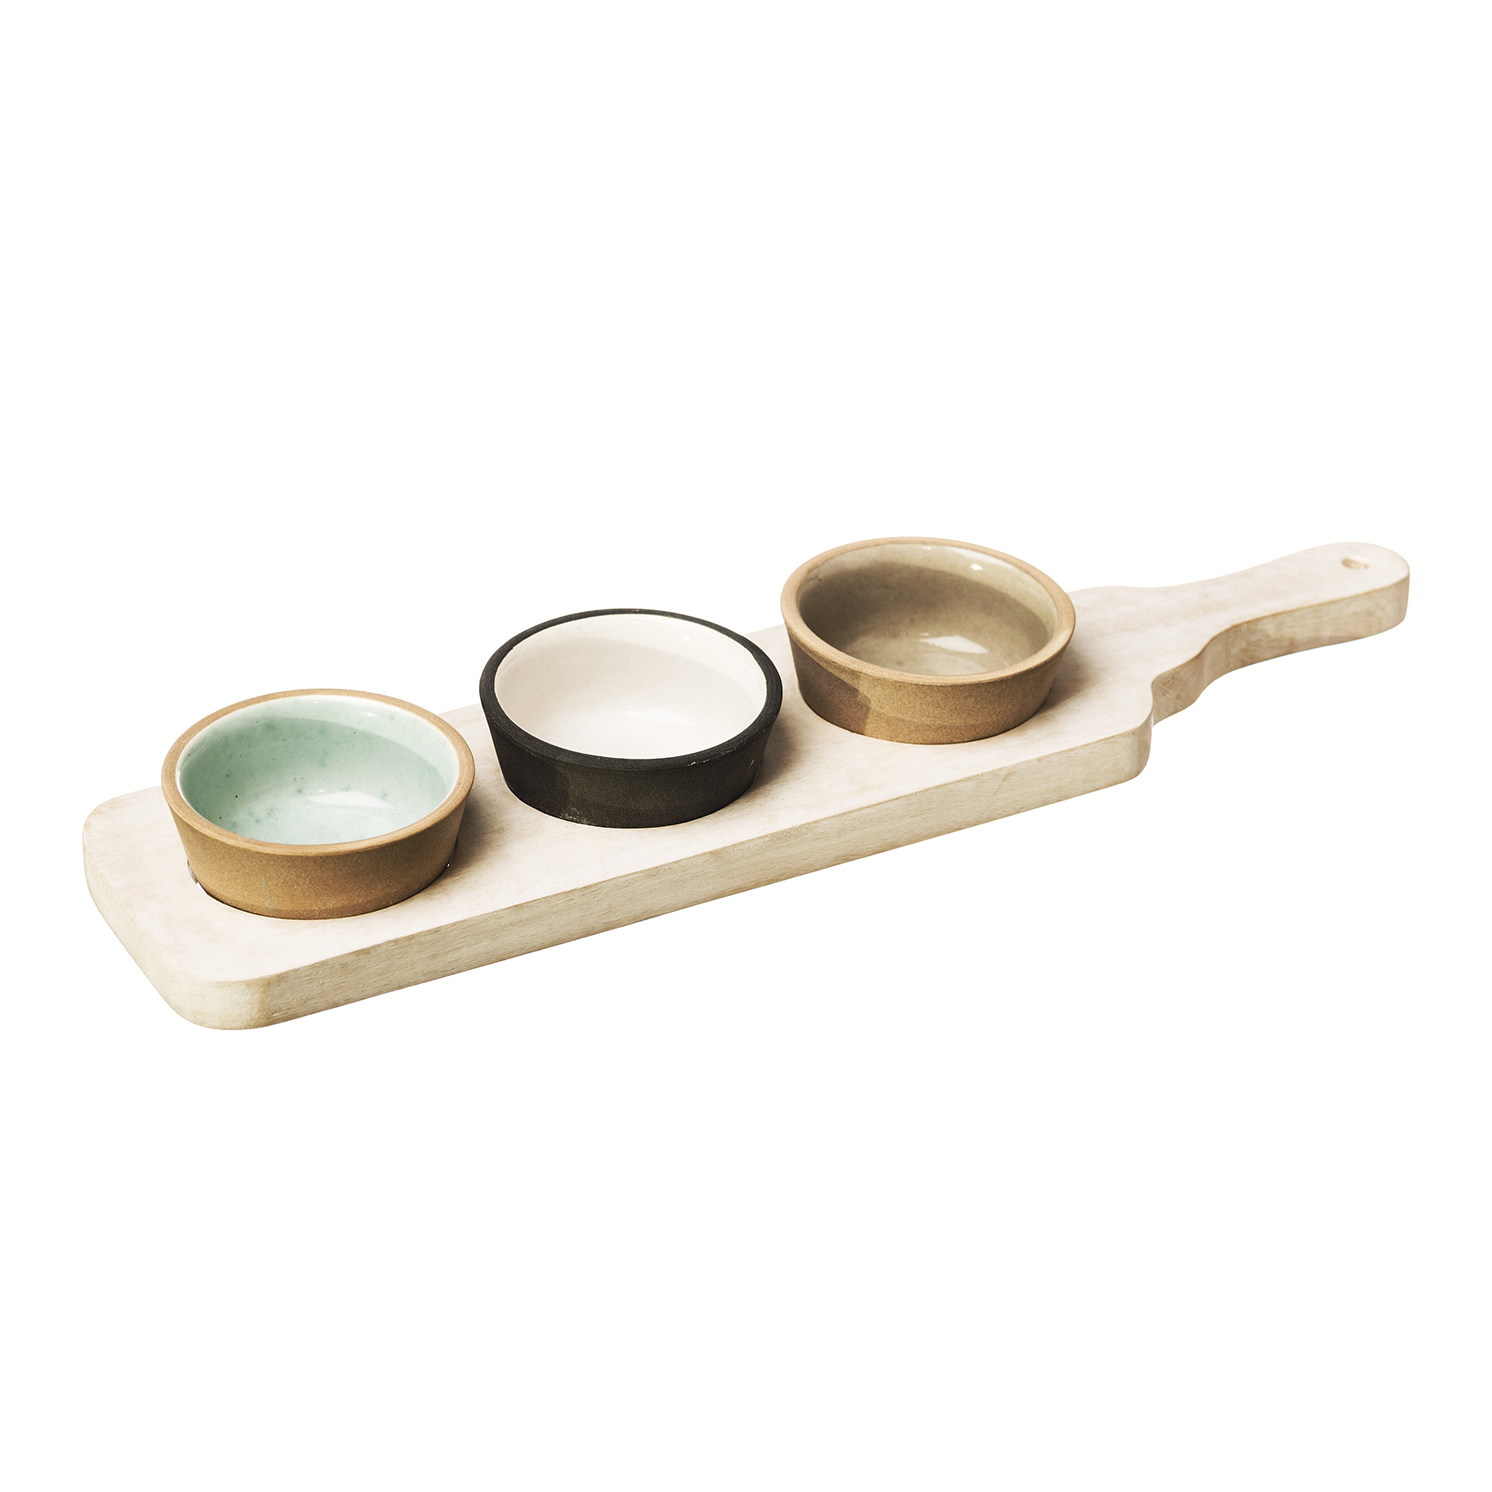 The Just Slate Company – Stoneware & Mango Wood Bowl & Paddle Set in Gift Box